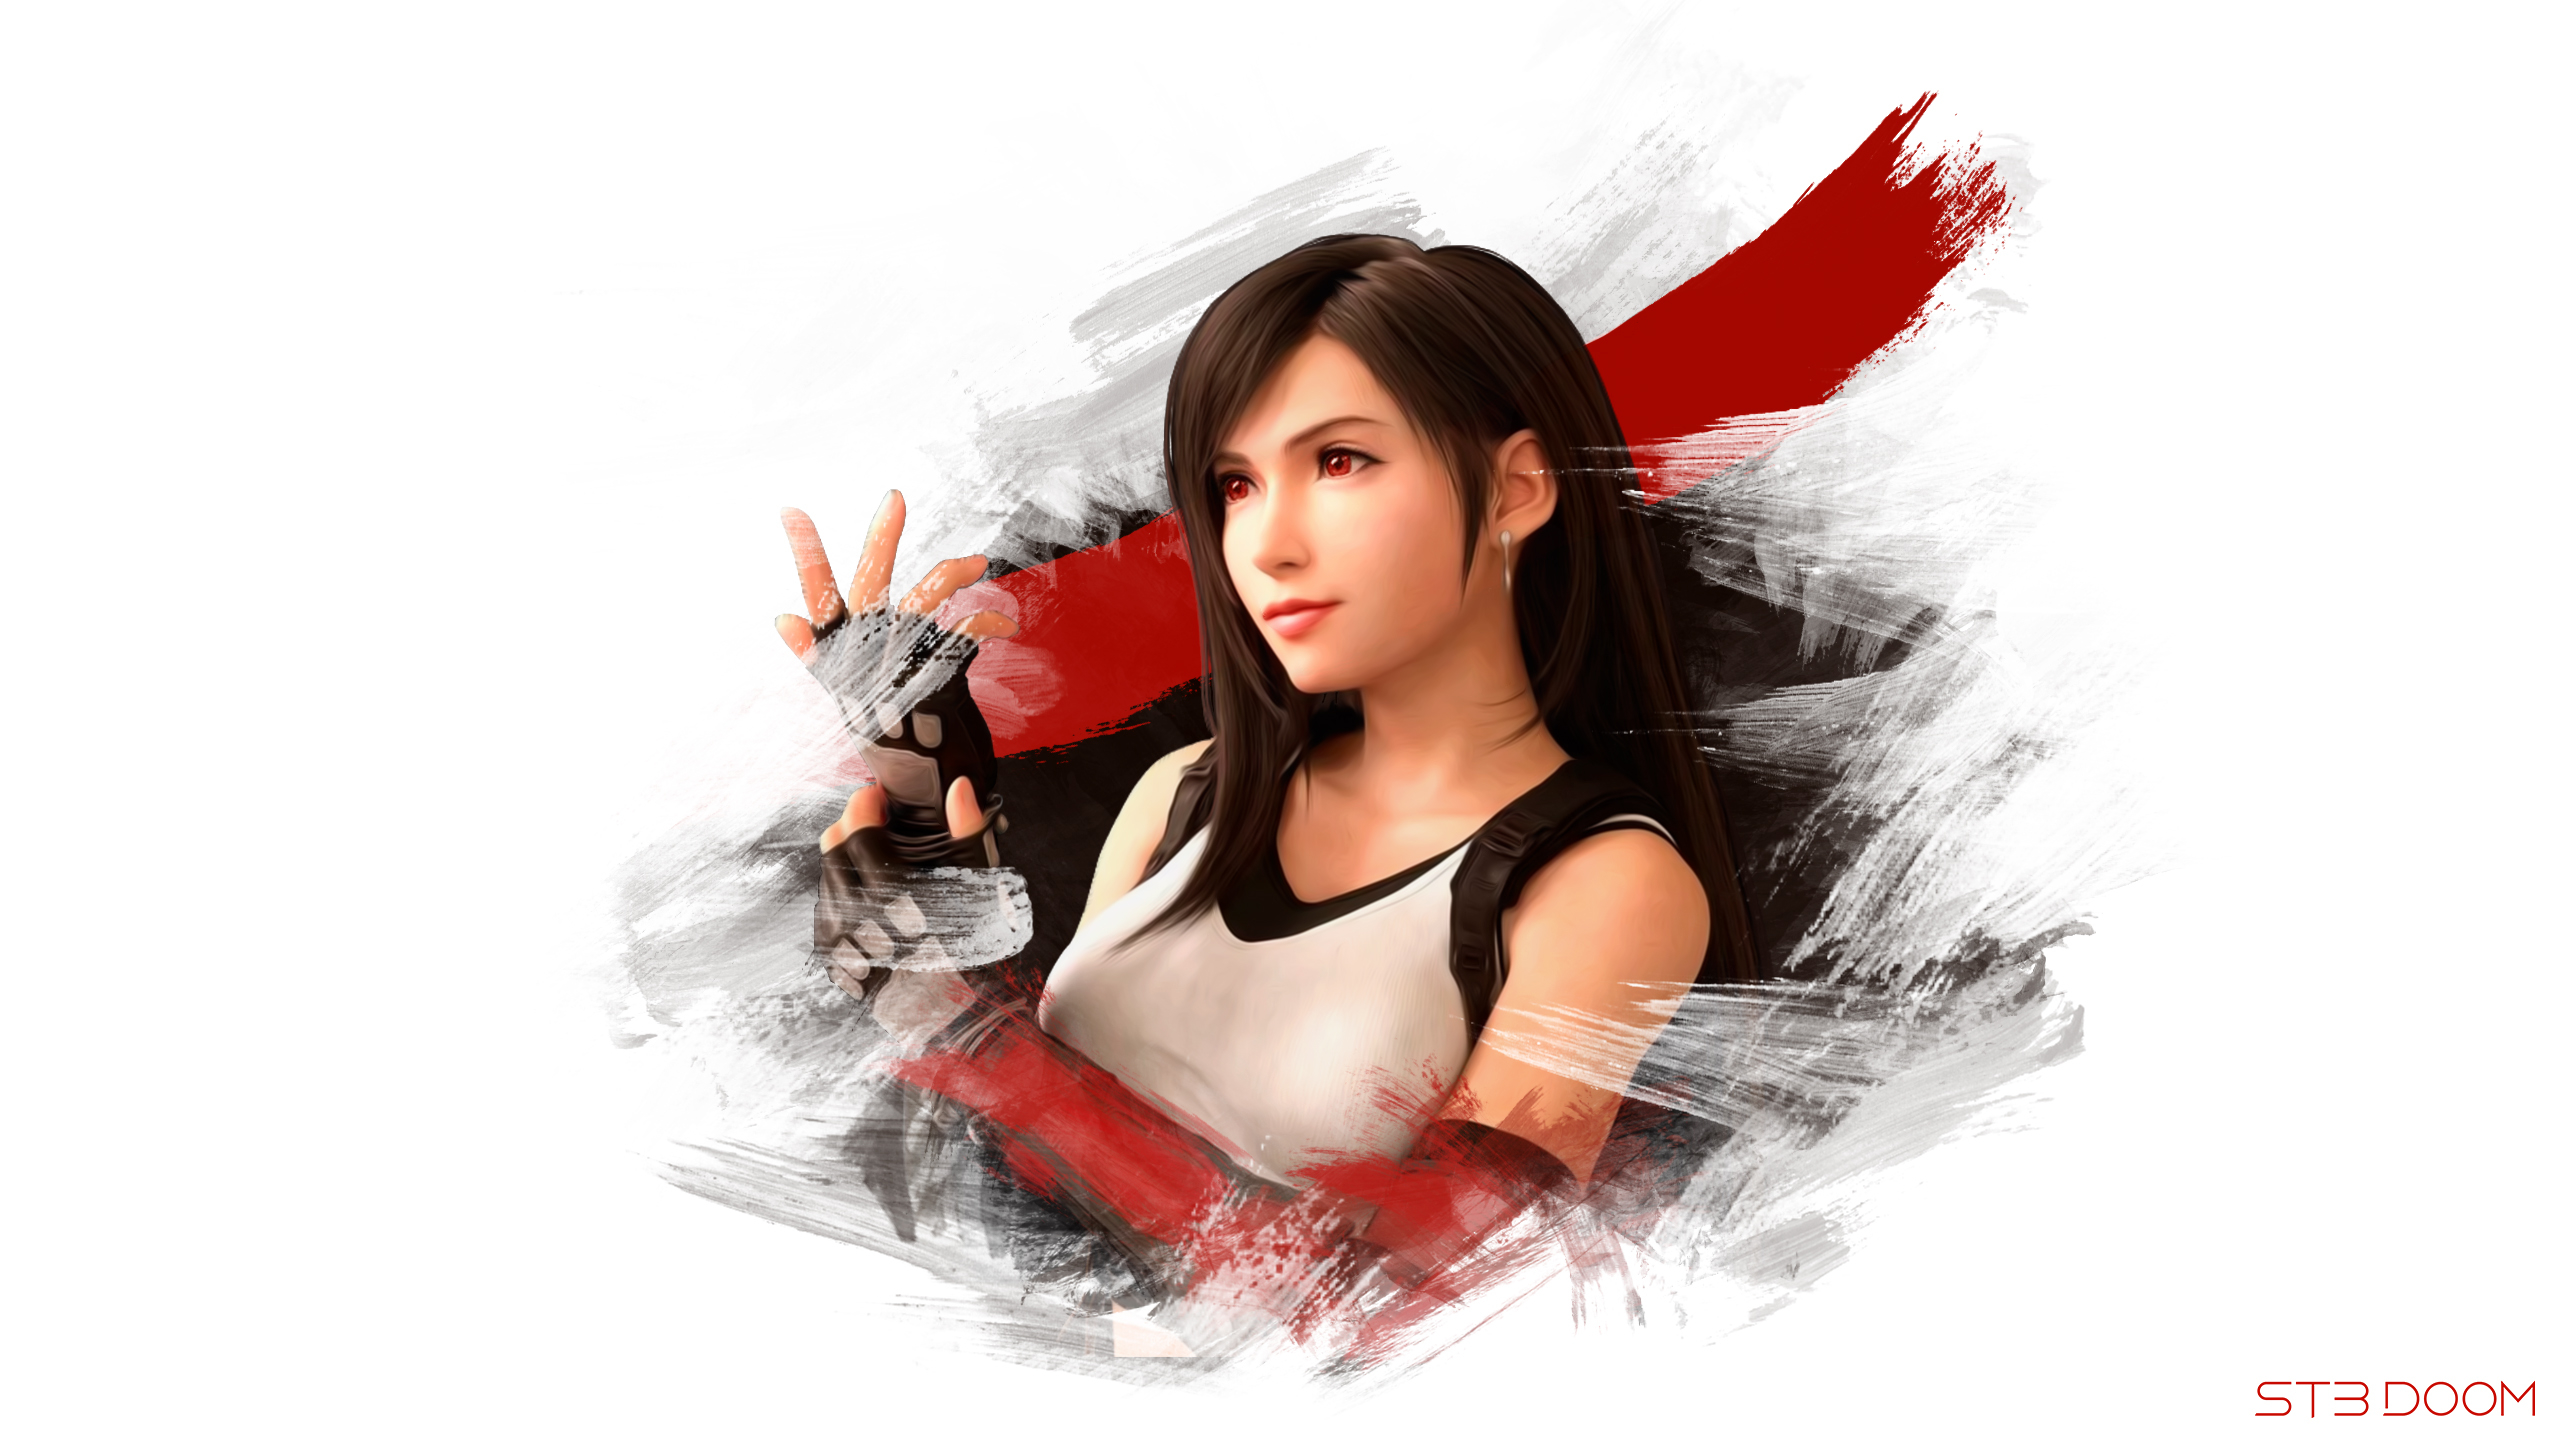 1440x900 Tifa Final Fantasy Vii Remake Digital Art 1440x900 Wallpaper Hd Games 4k Wallpapers Images Photos And Background